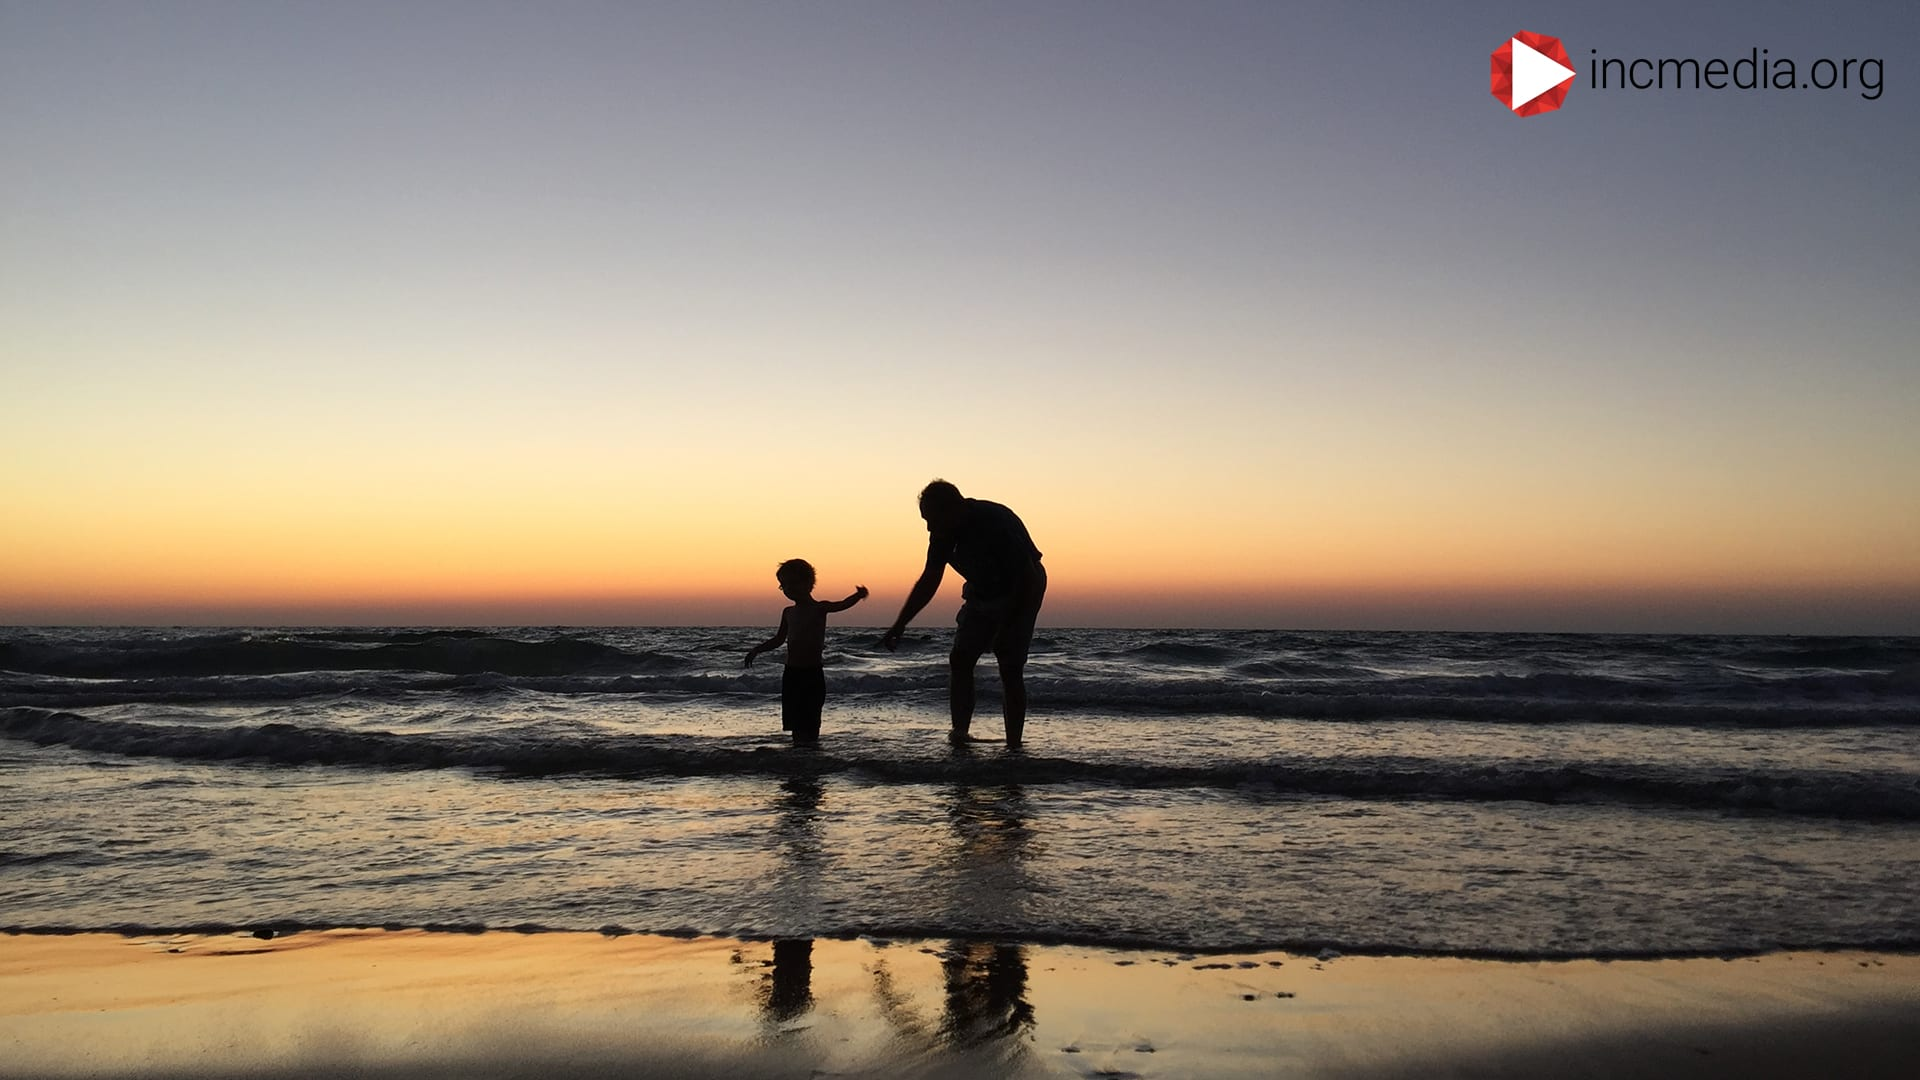 man and son playing on the beach silhouette